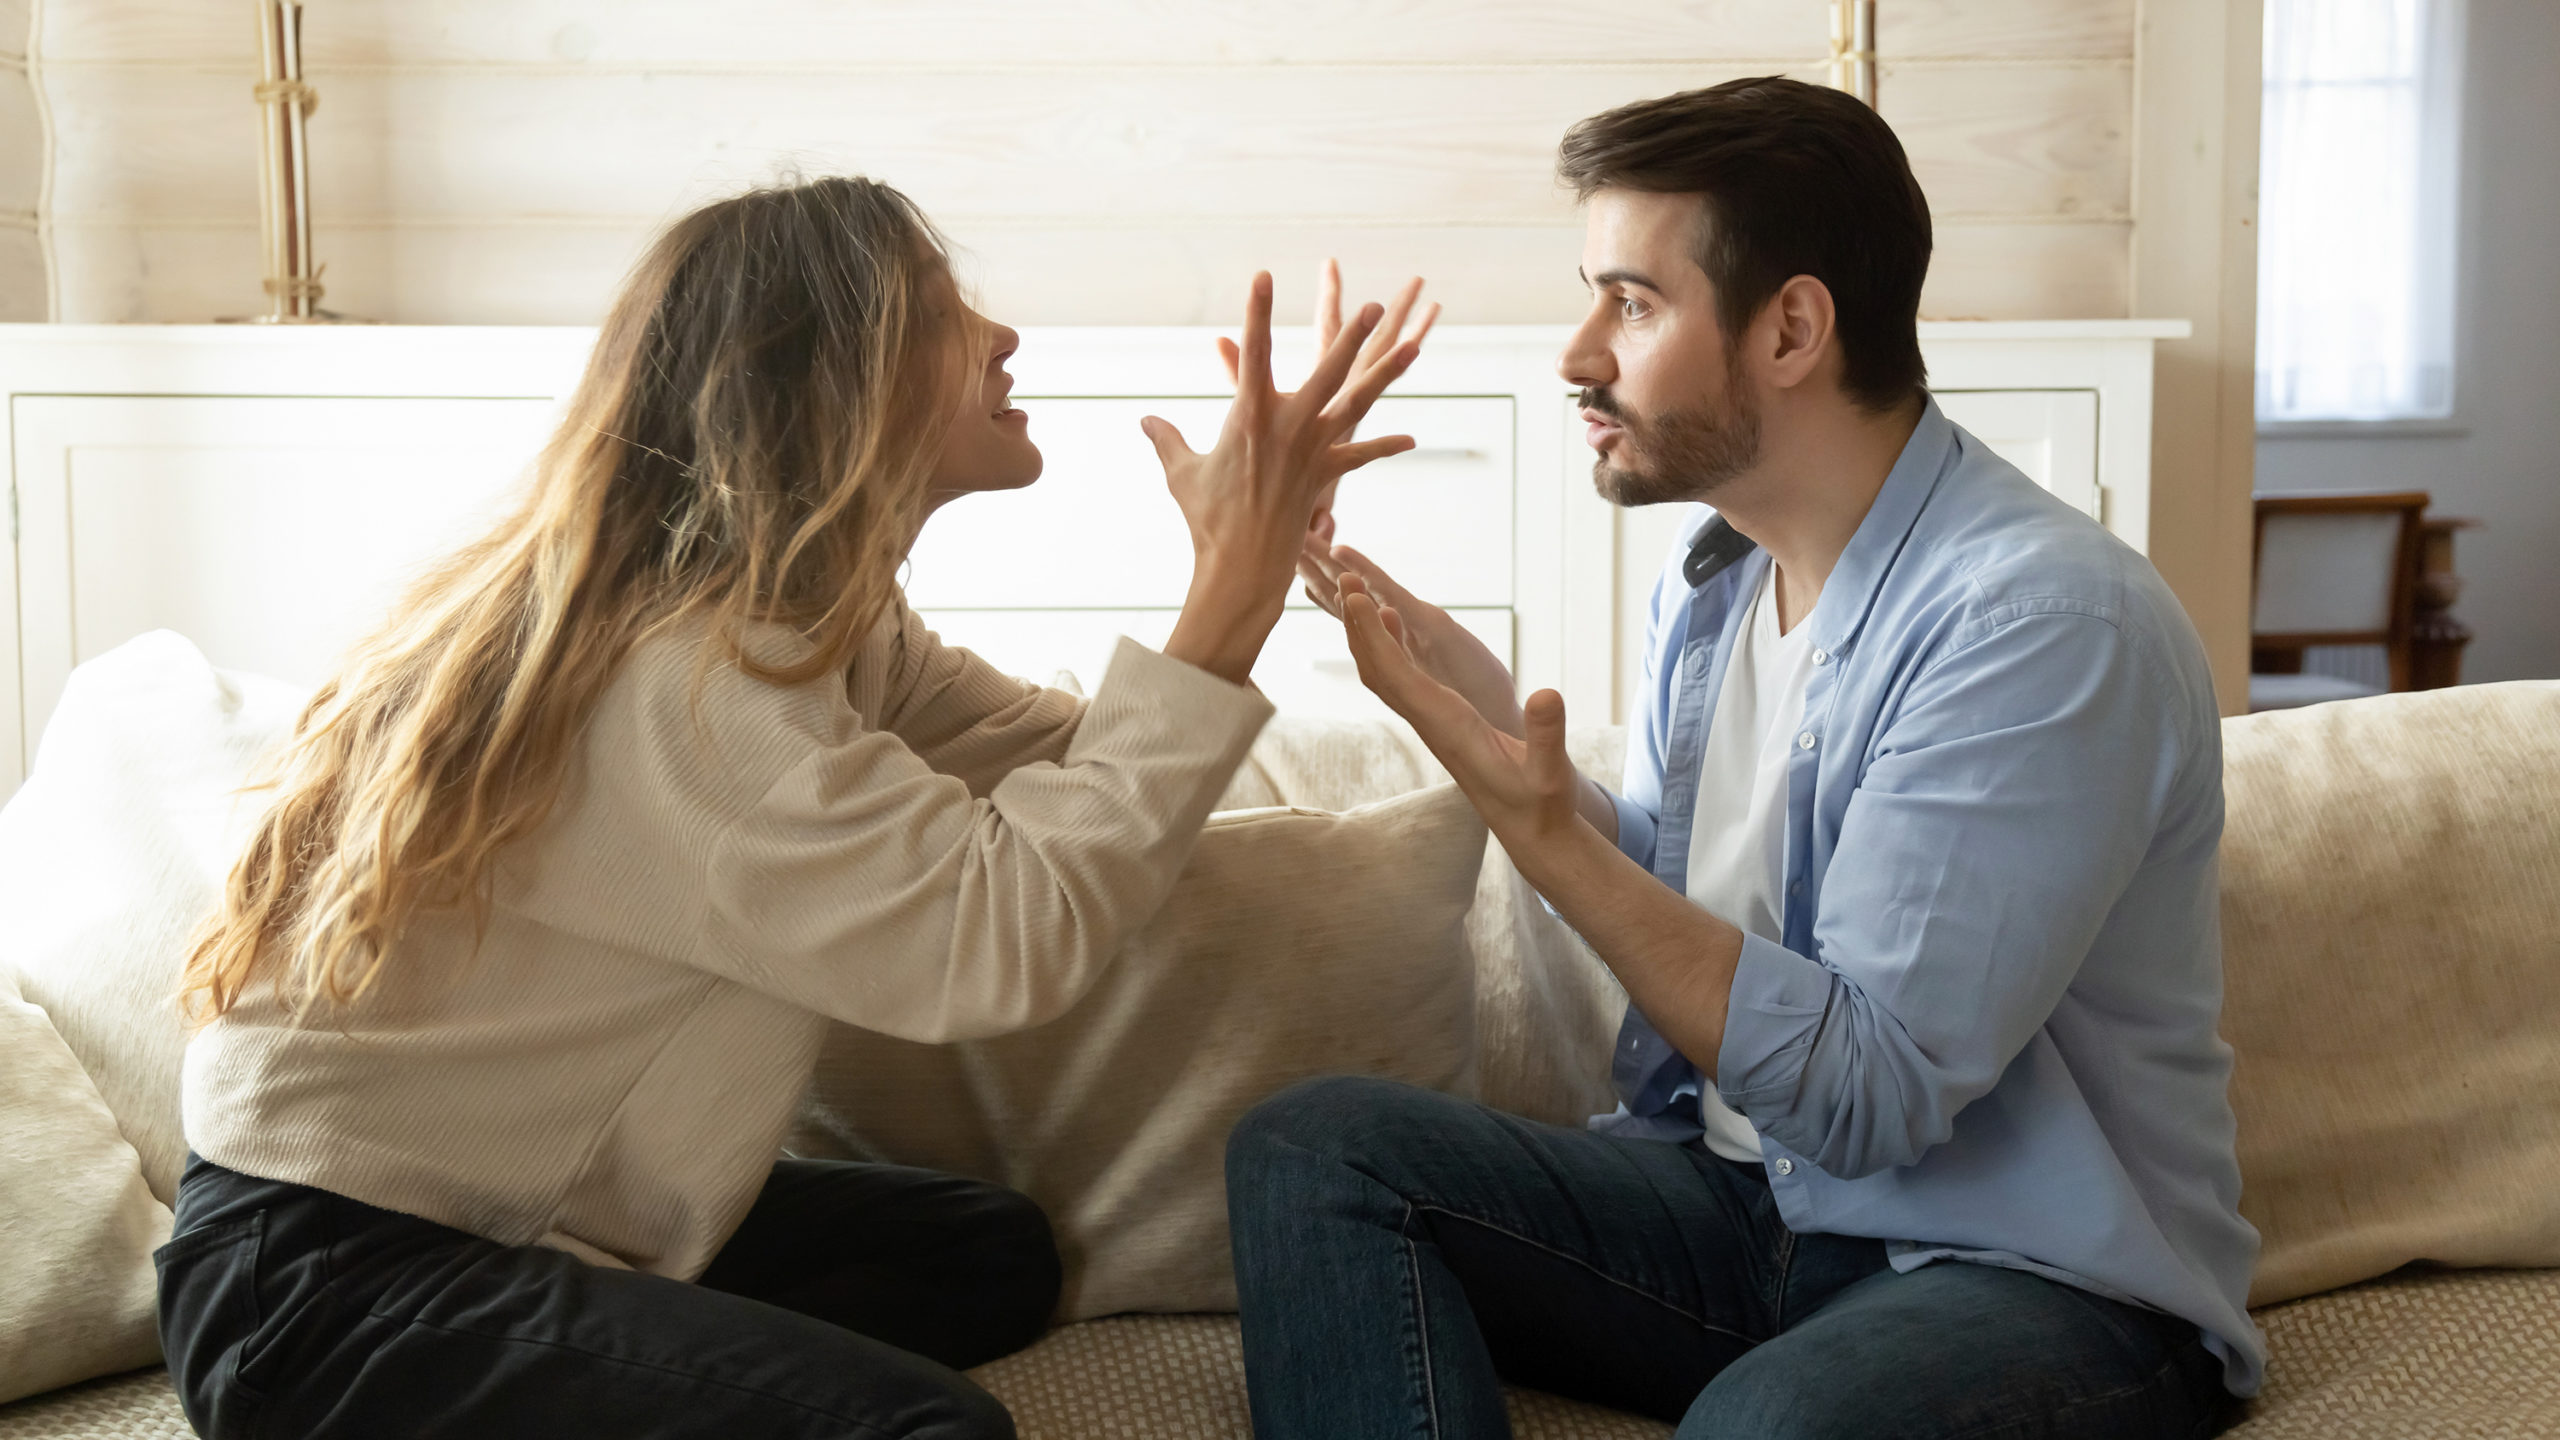 Young couple arguing on a couch about annoying habits